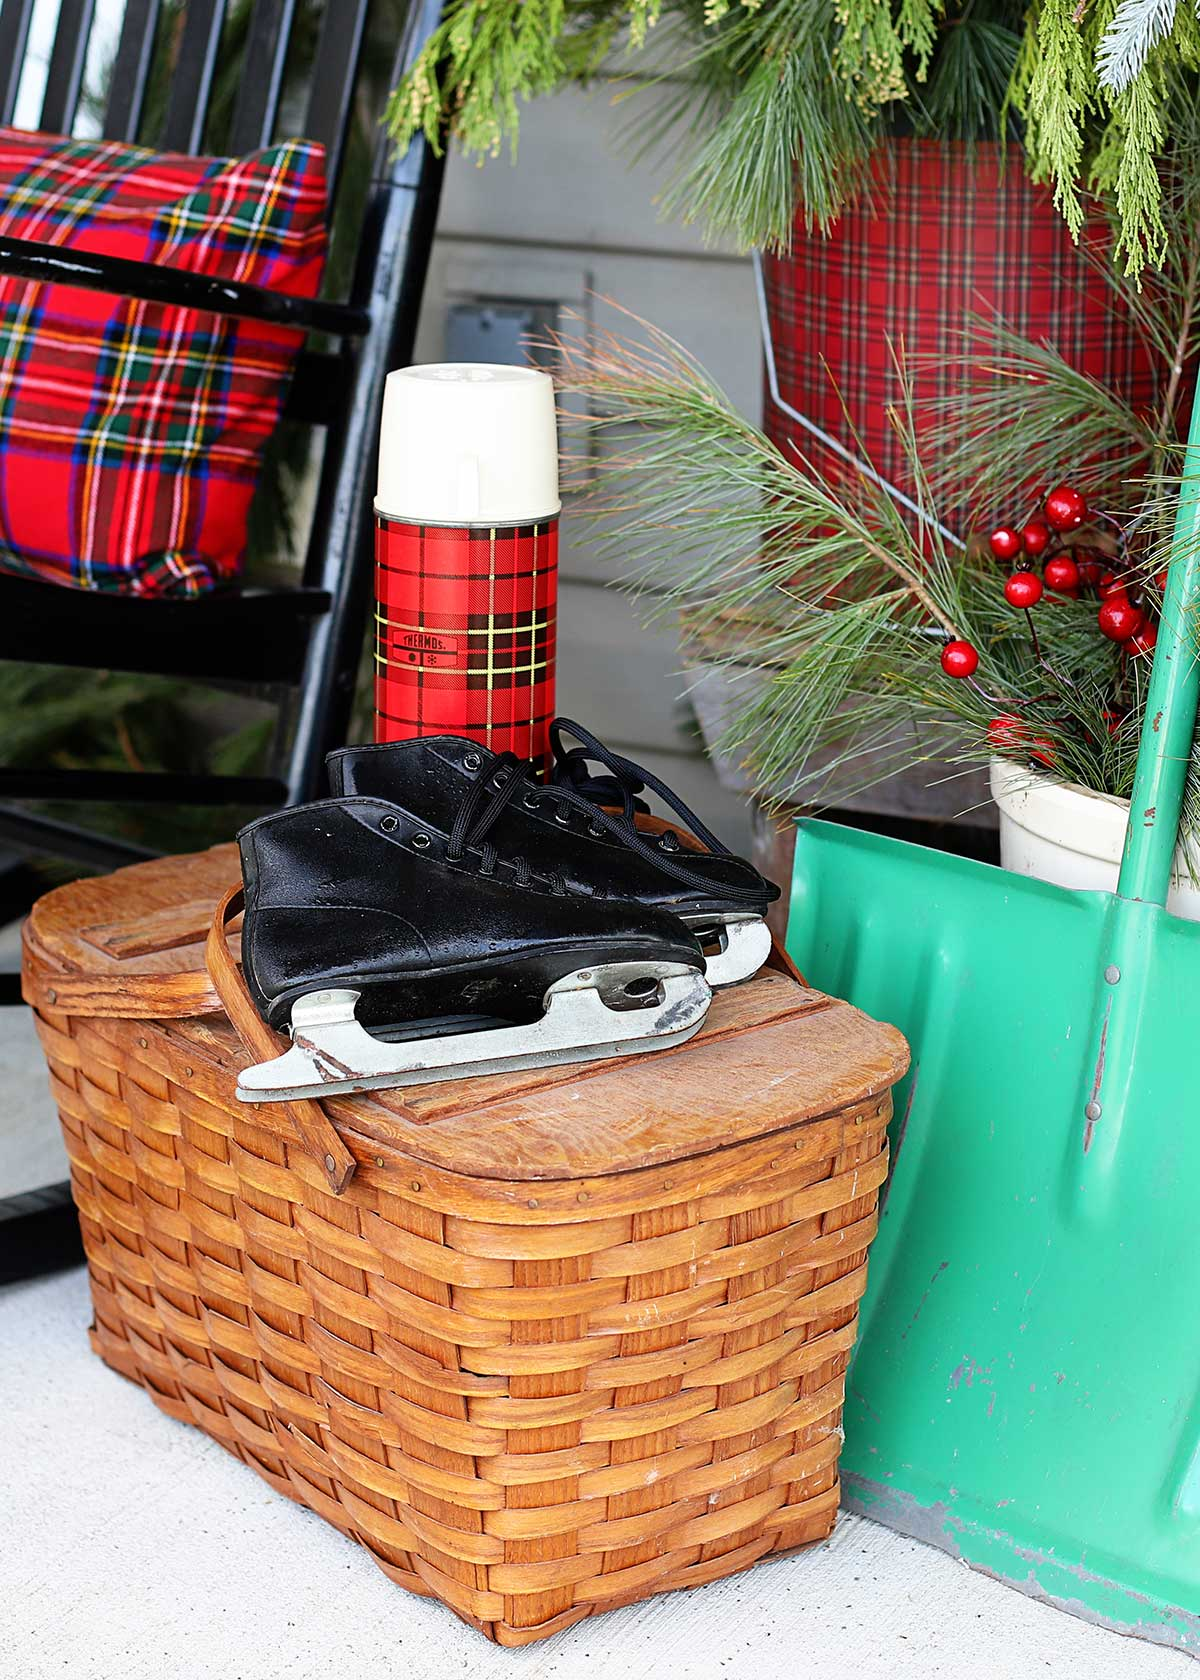 plaid on the porch used as Christmas decor